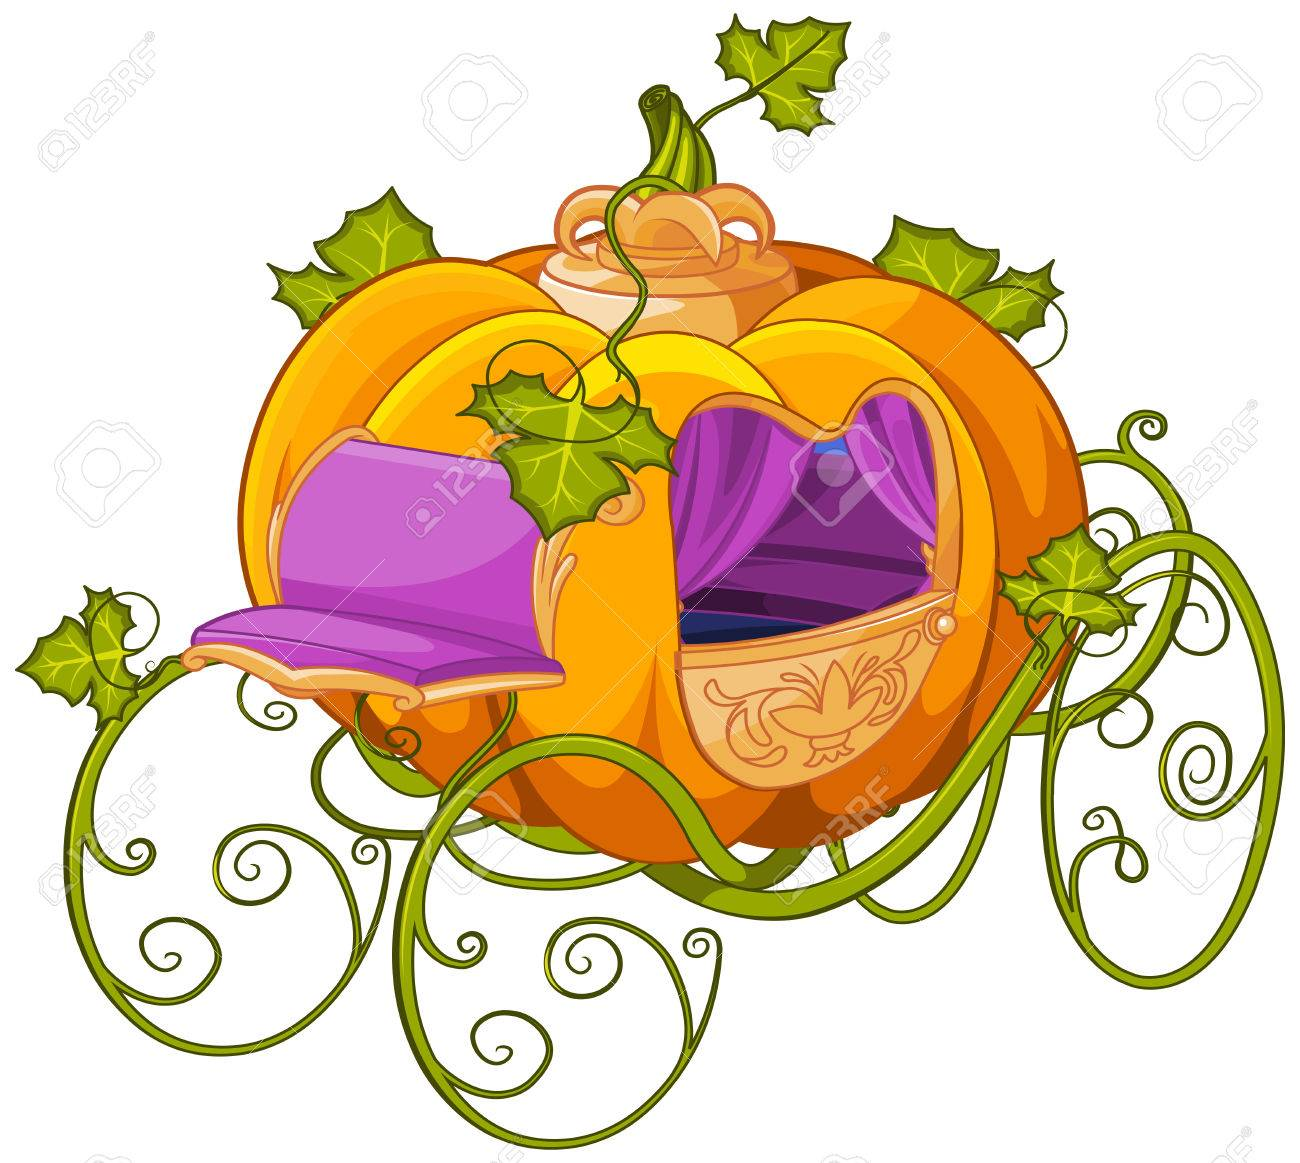 hight resolution of pumpkin turn into a carriage or carriage turn into a pumpkin cinderella illustration